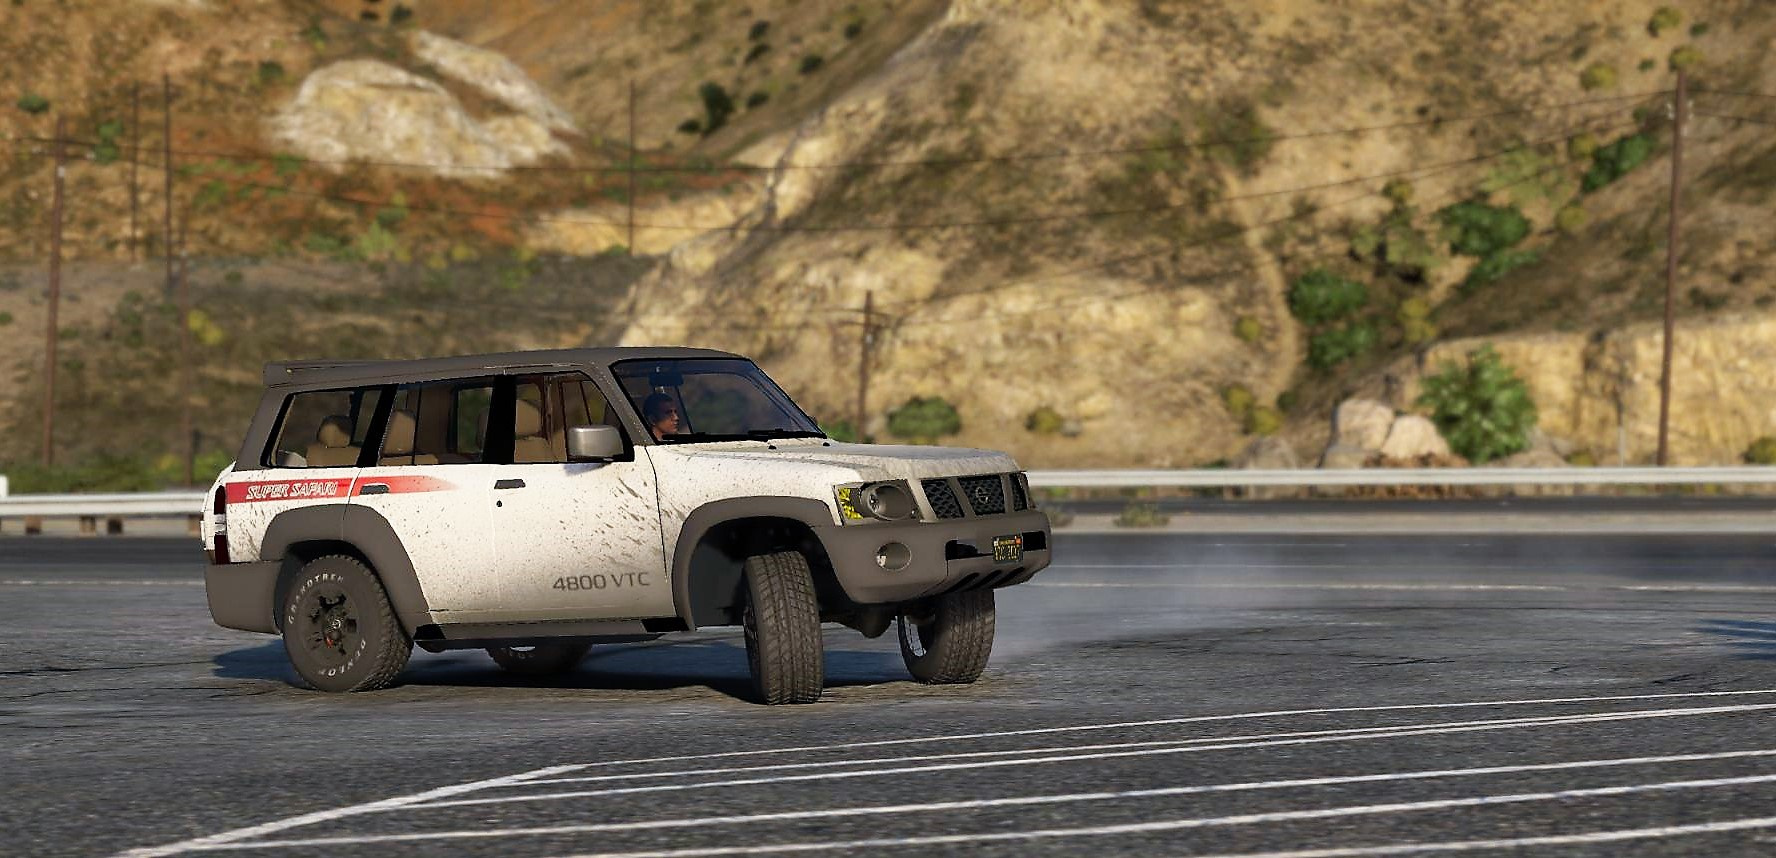 Nissan Patrol Super Safari Vtc Y61 4800 2017 Lwb Add On Replace Livery Extras Dirt Template Gta5 Mods Com